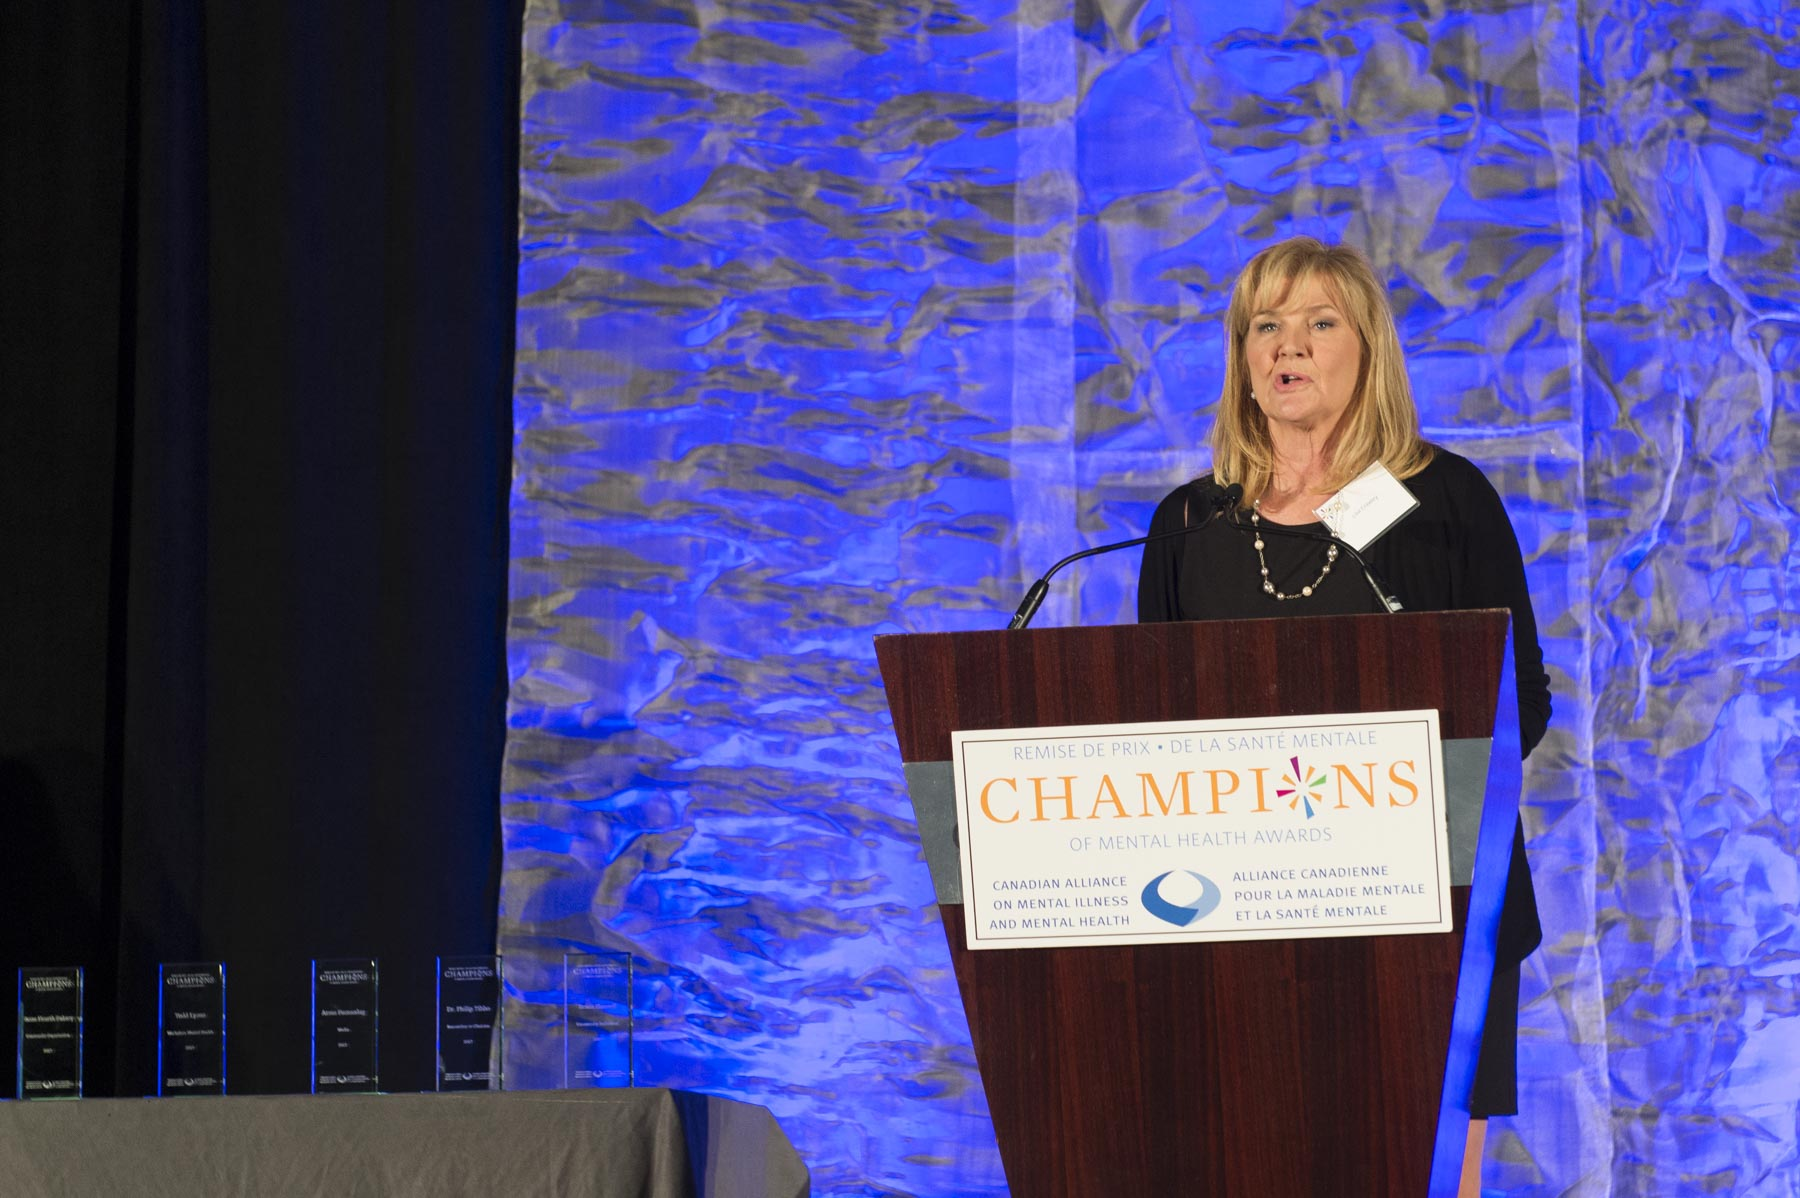 At the beginning of the gala, Ms. Lisa Crawley, Co-Chair of the Canadian Alliance on Mental Illness and Mental Health, delivered welcoming remarks. The annual Champions of Mental Health Awards recognize individuals and organizations whose outstanding contributions have advanced the mental health agenda in Canada.